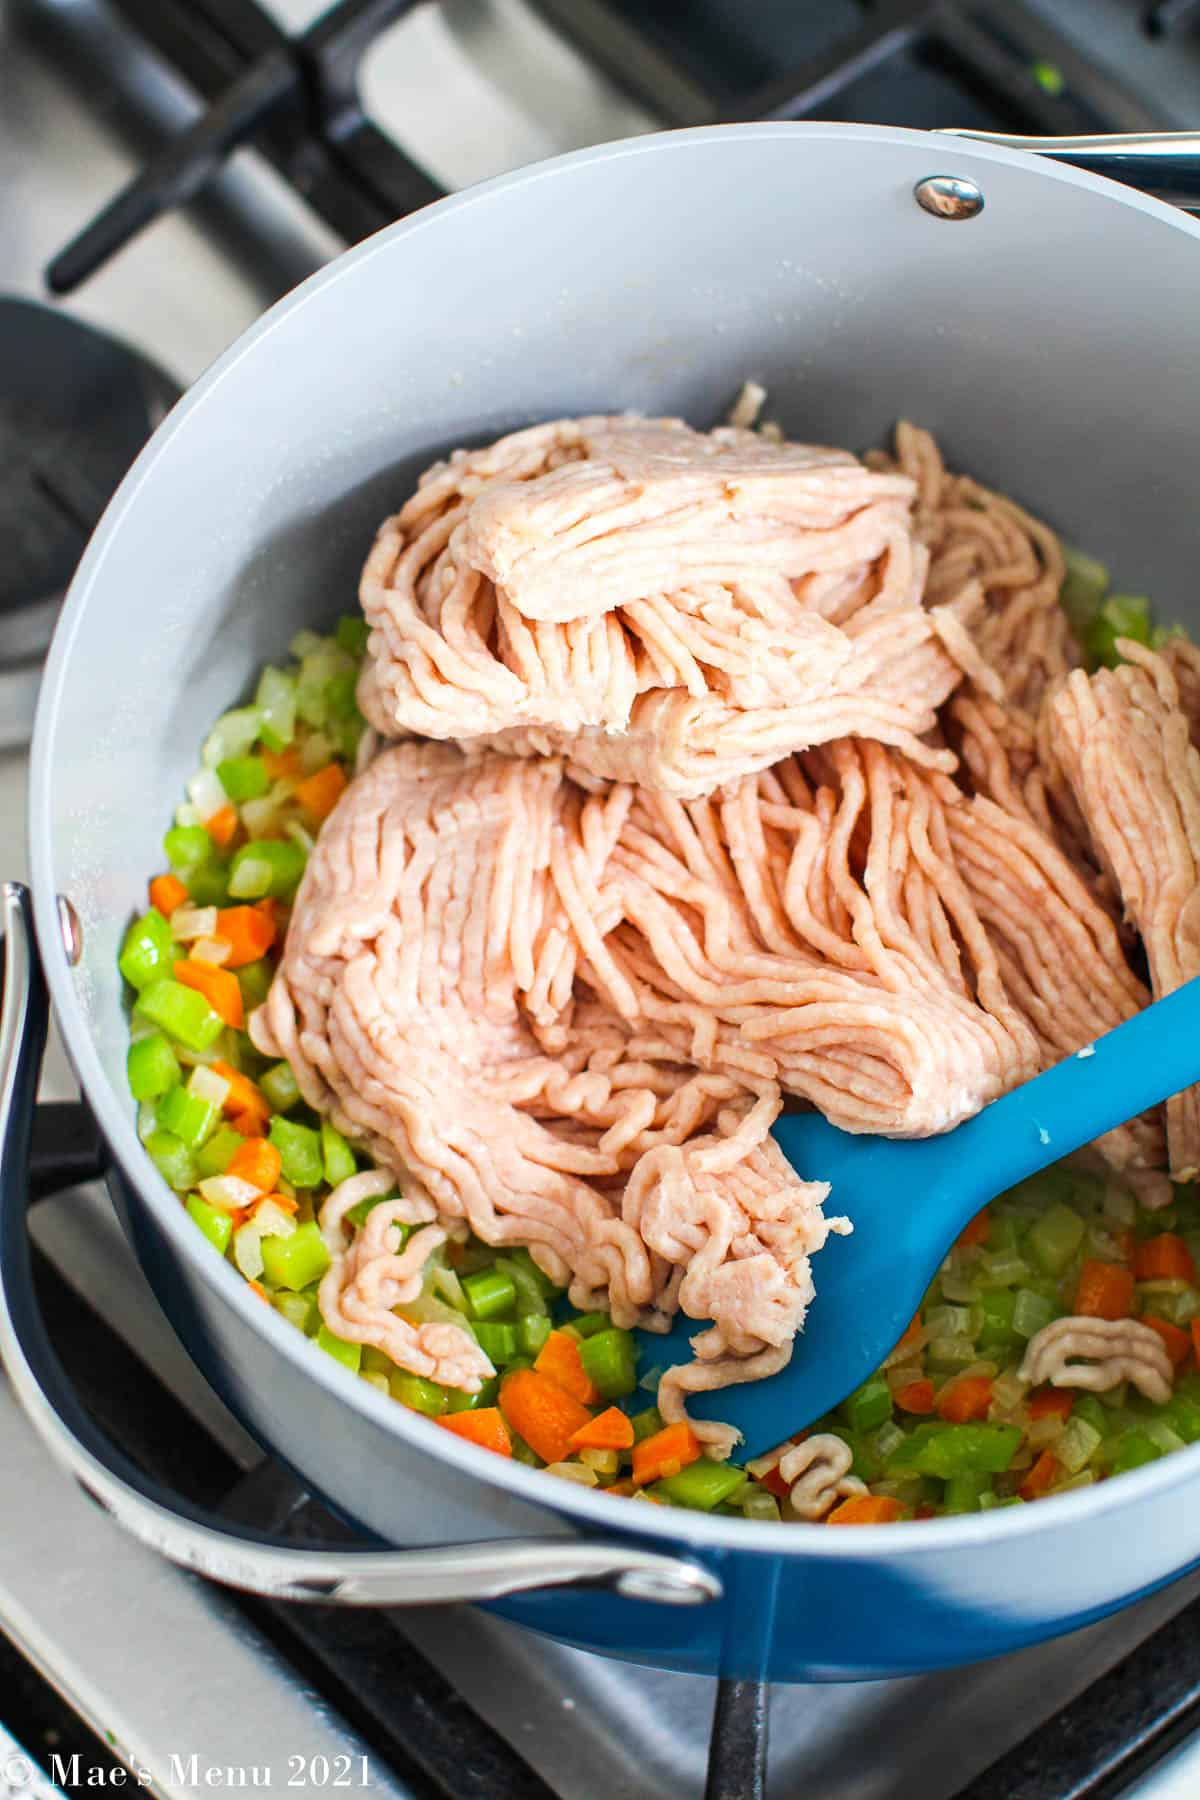 Adding chicken to the stockpot with the veggies